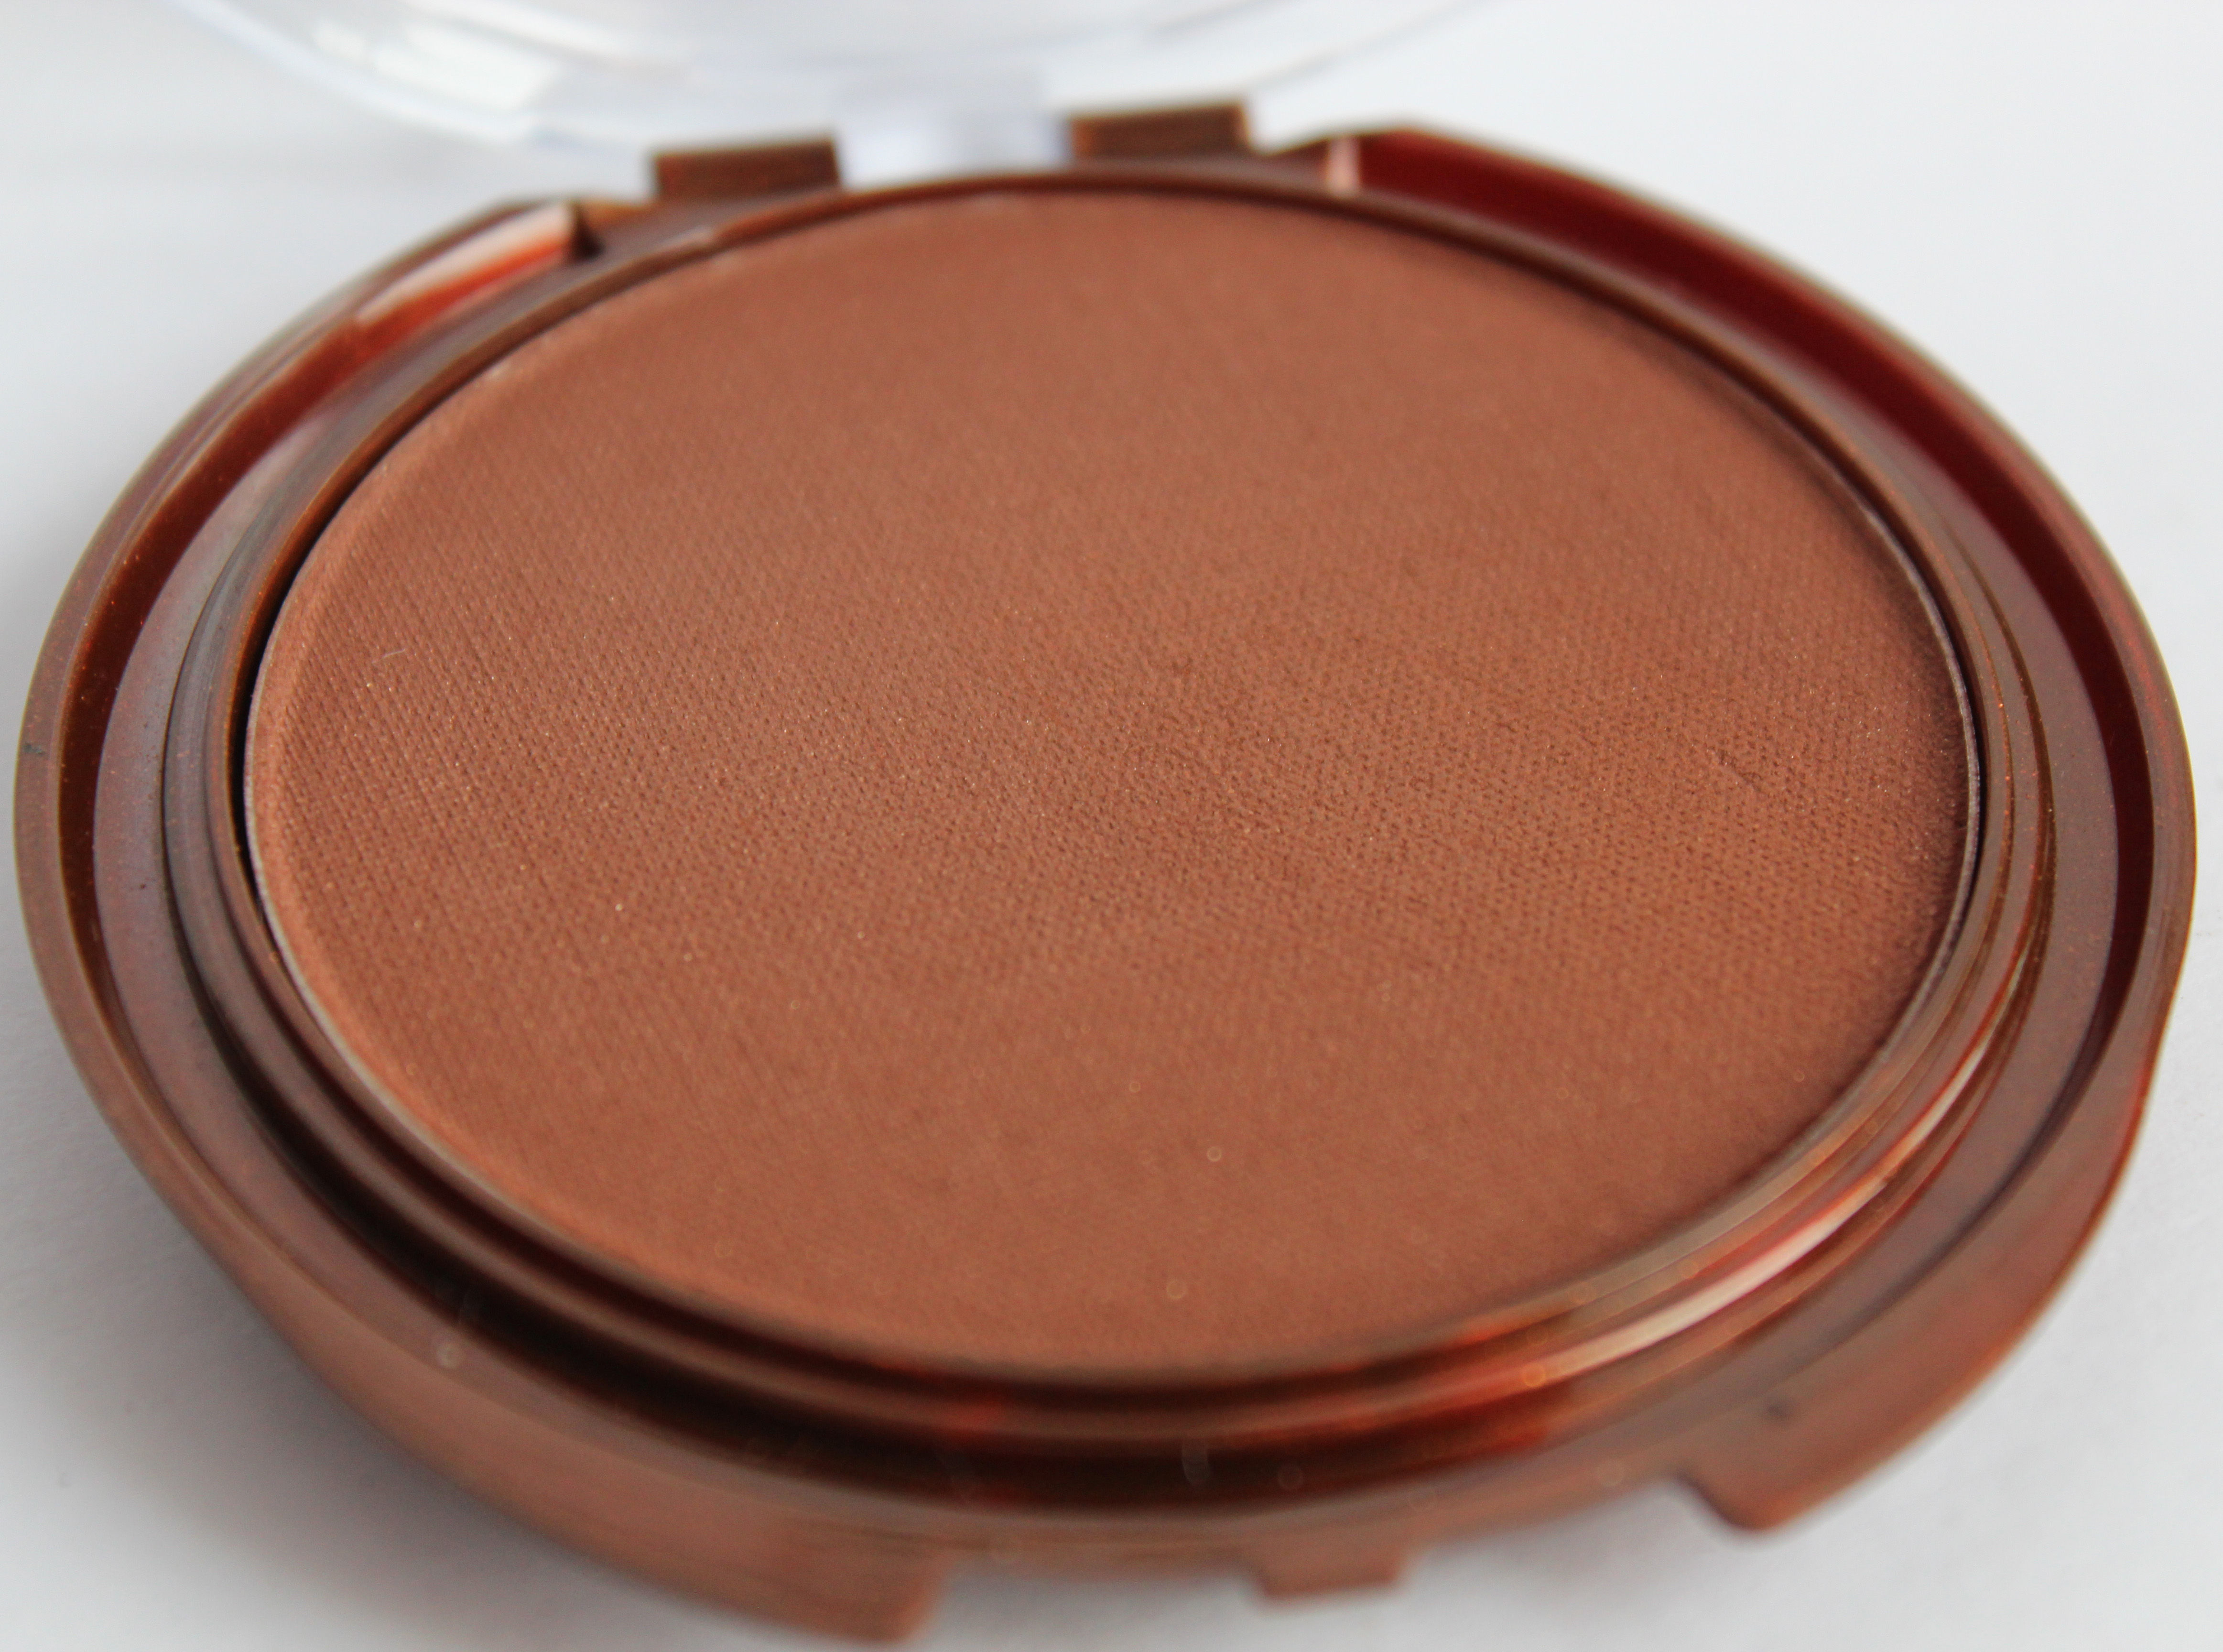 Covergirl queen collection ebony bronze